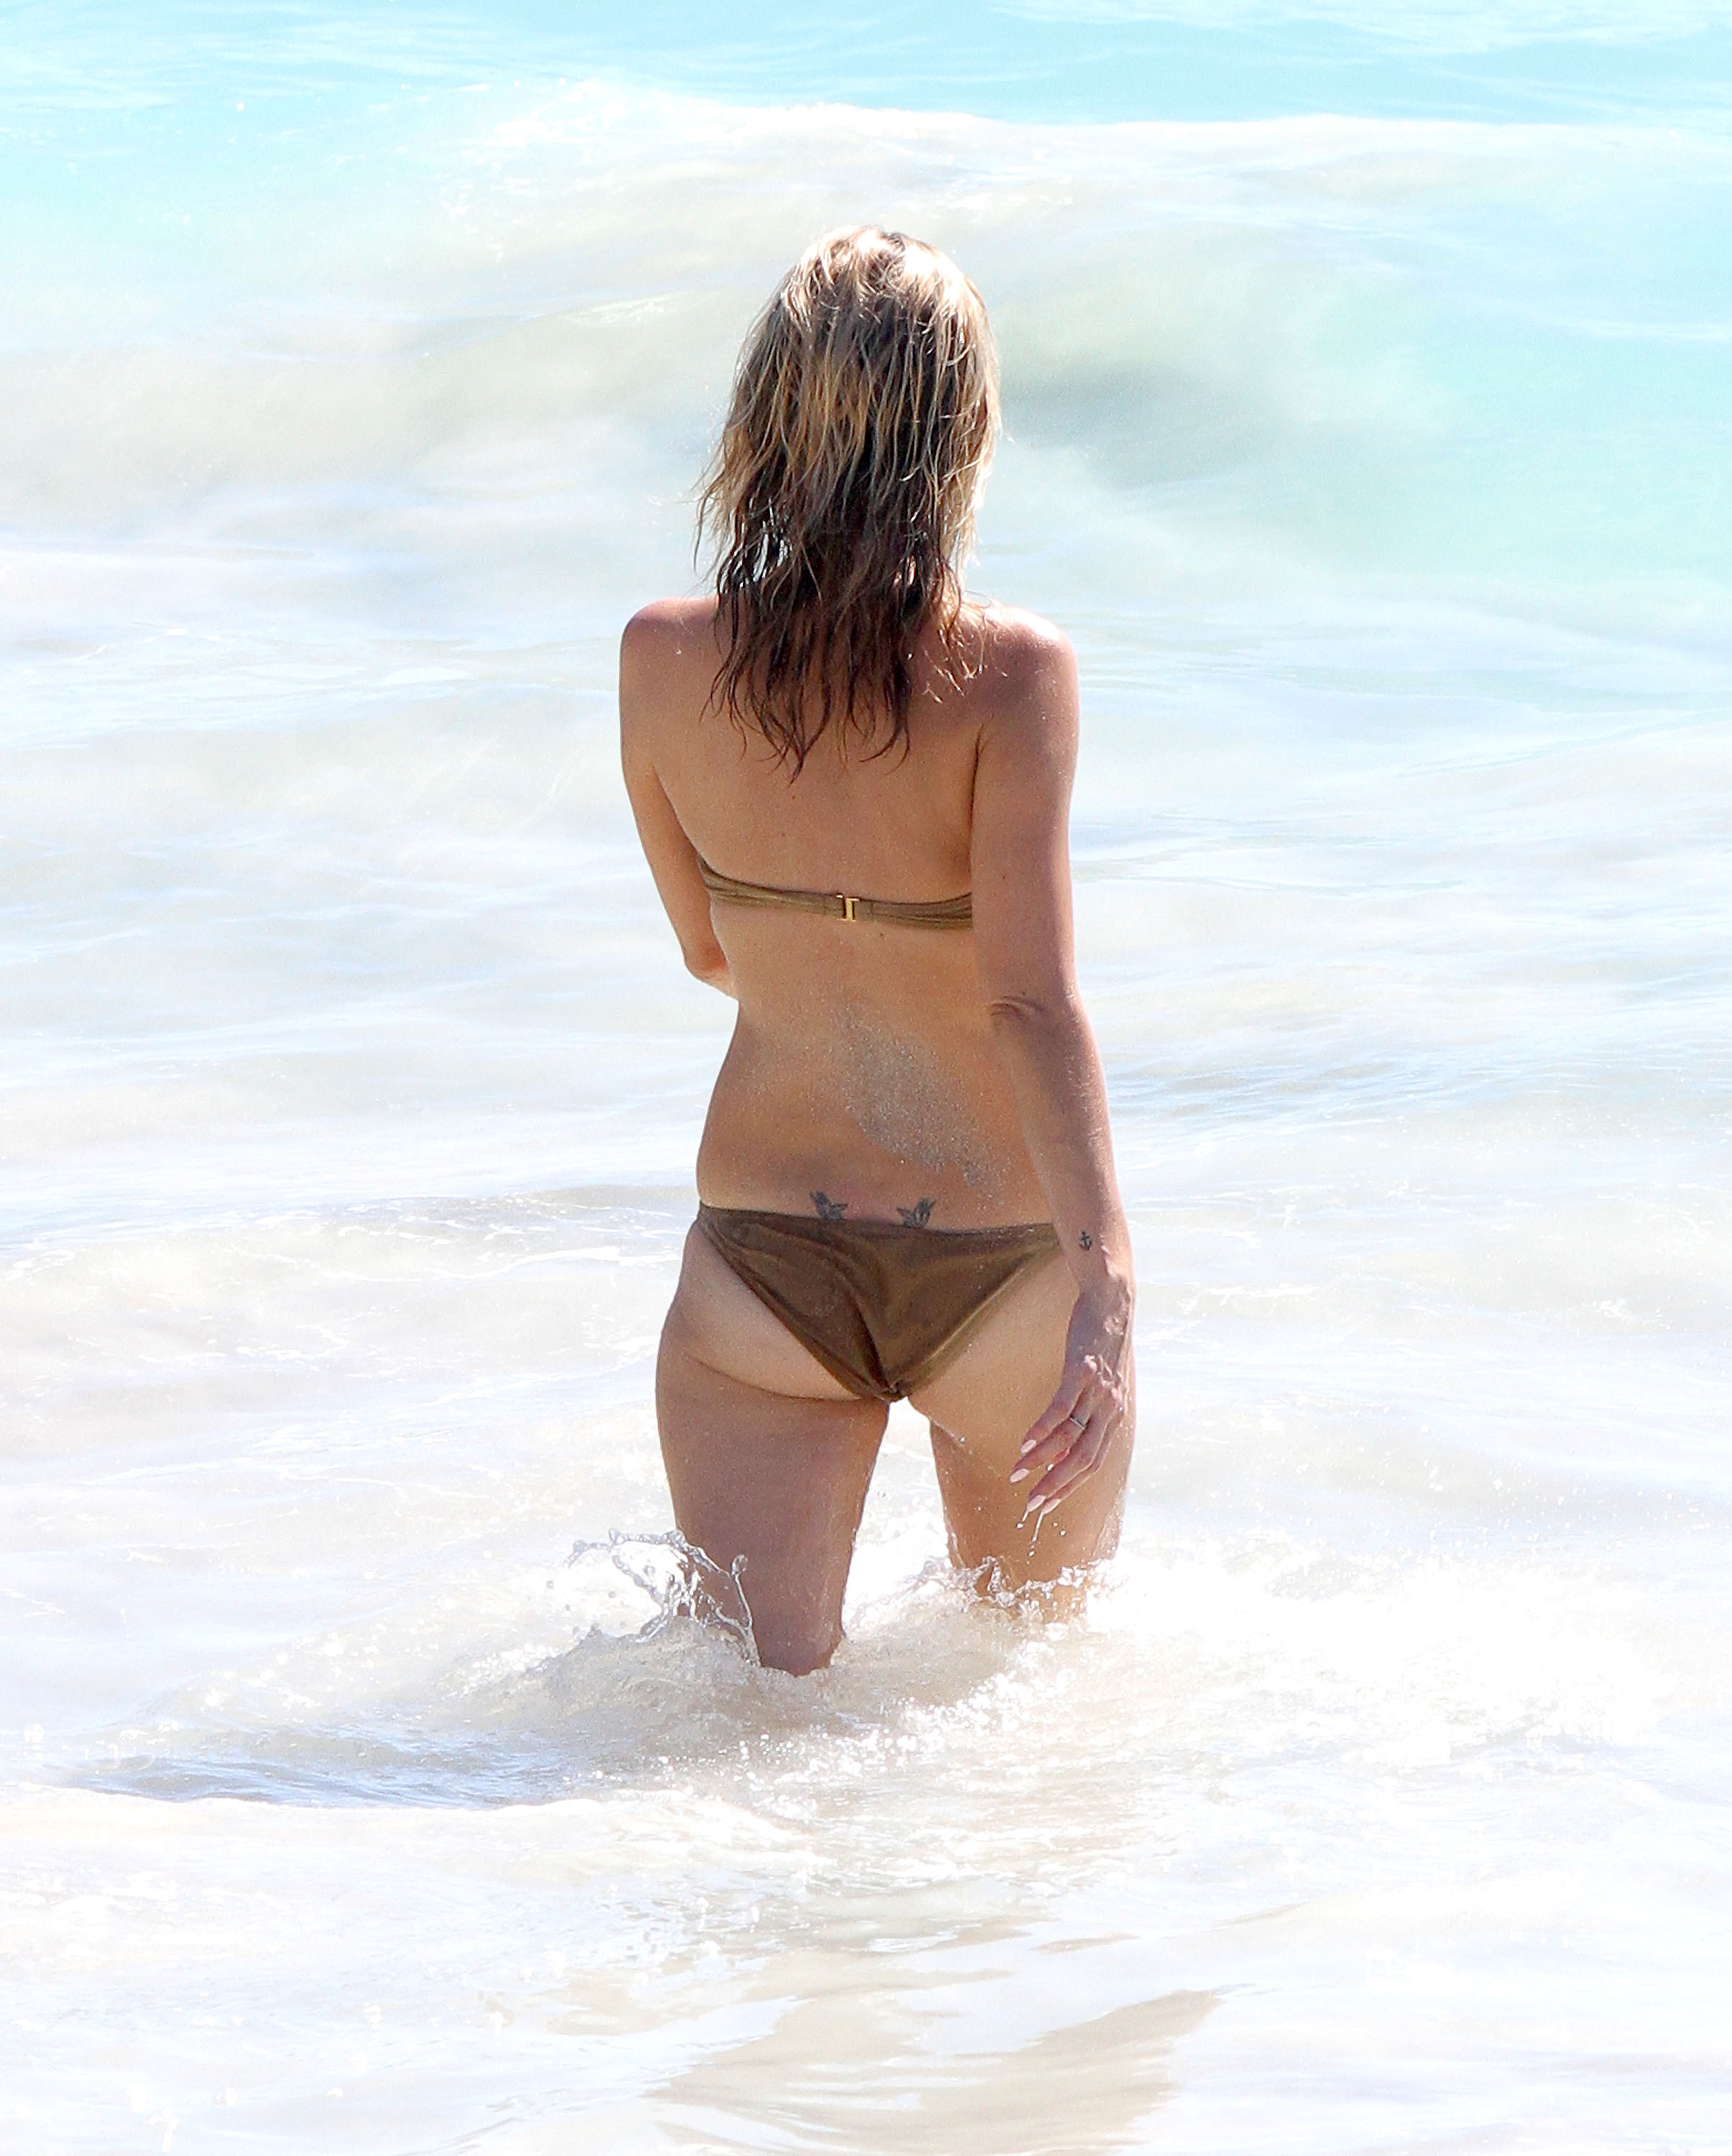 Kate Moss showed off her Lucian Freud tattoo on her lower back.